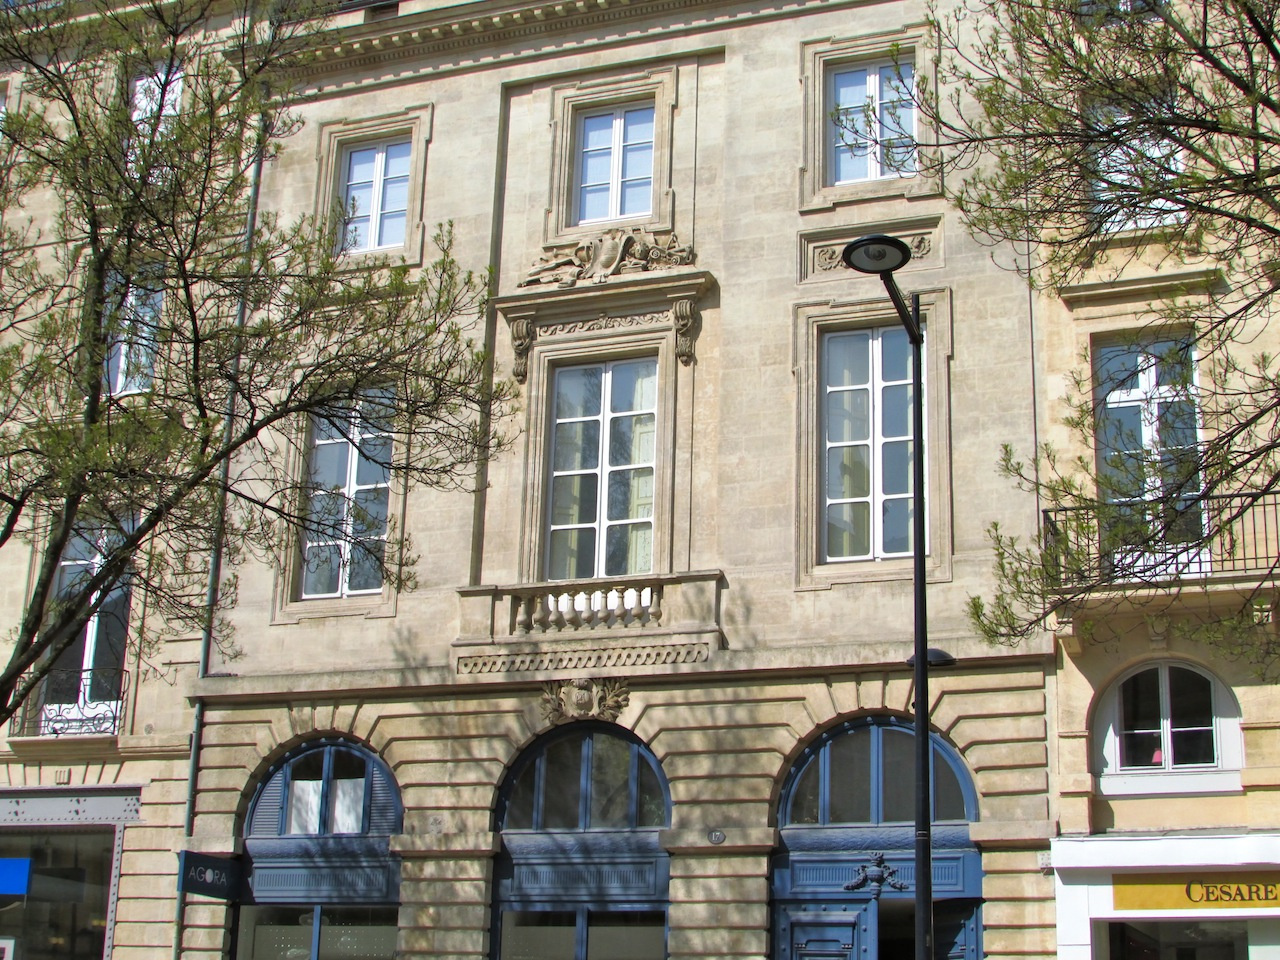 Vente appartement triangle d 39 or for Appartement bordeaux triangle d or